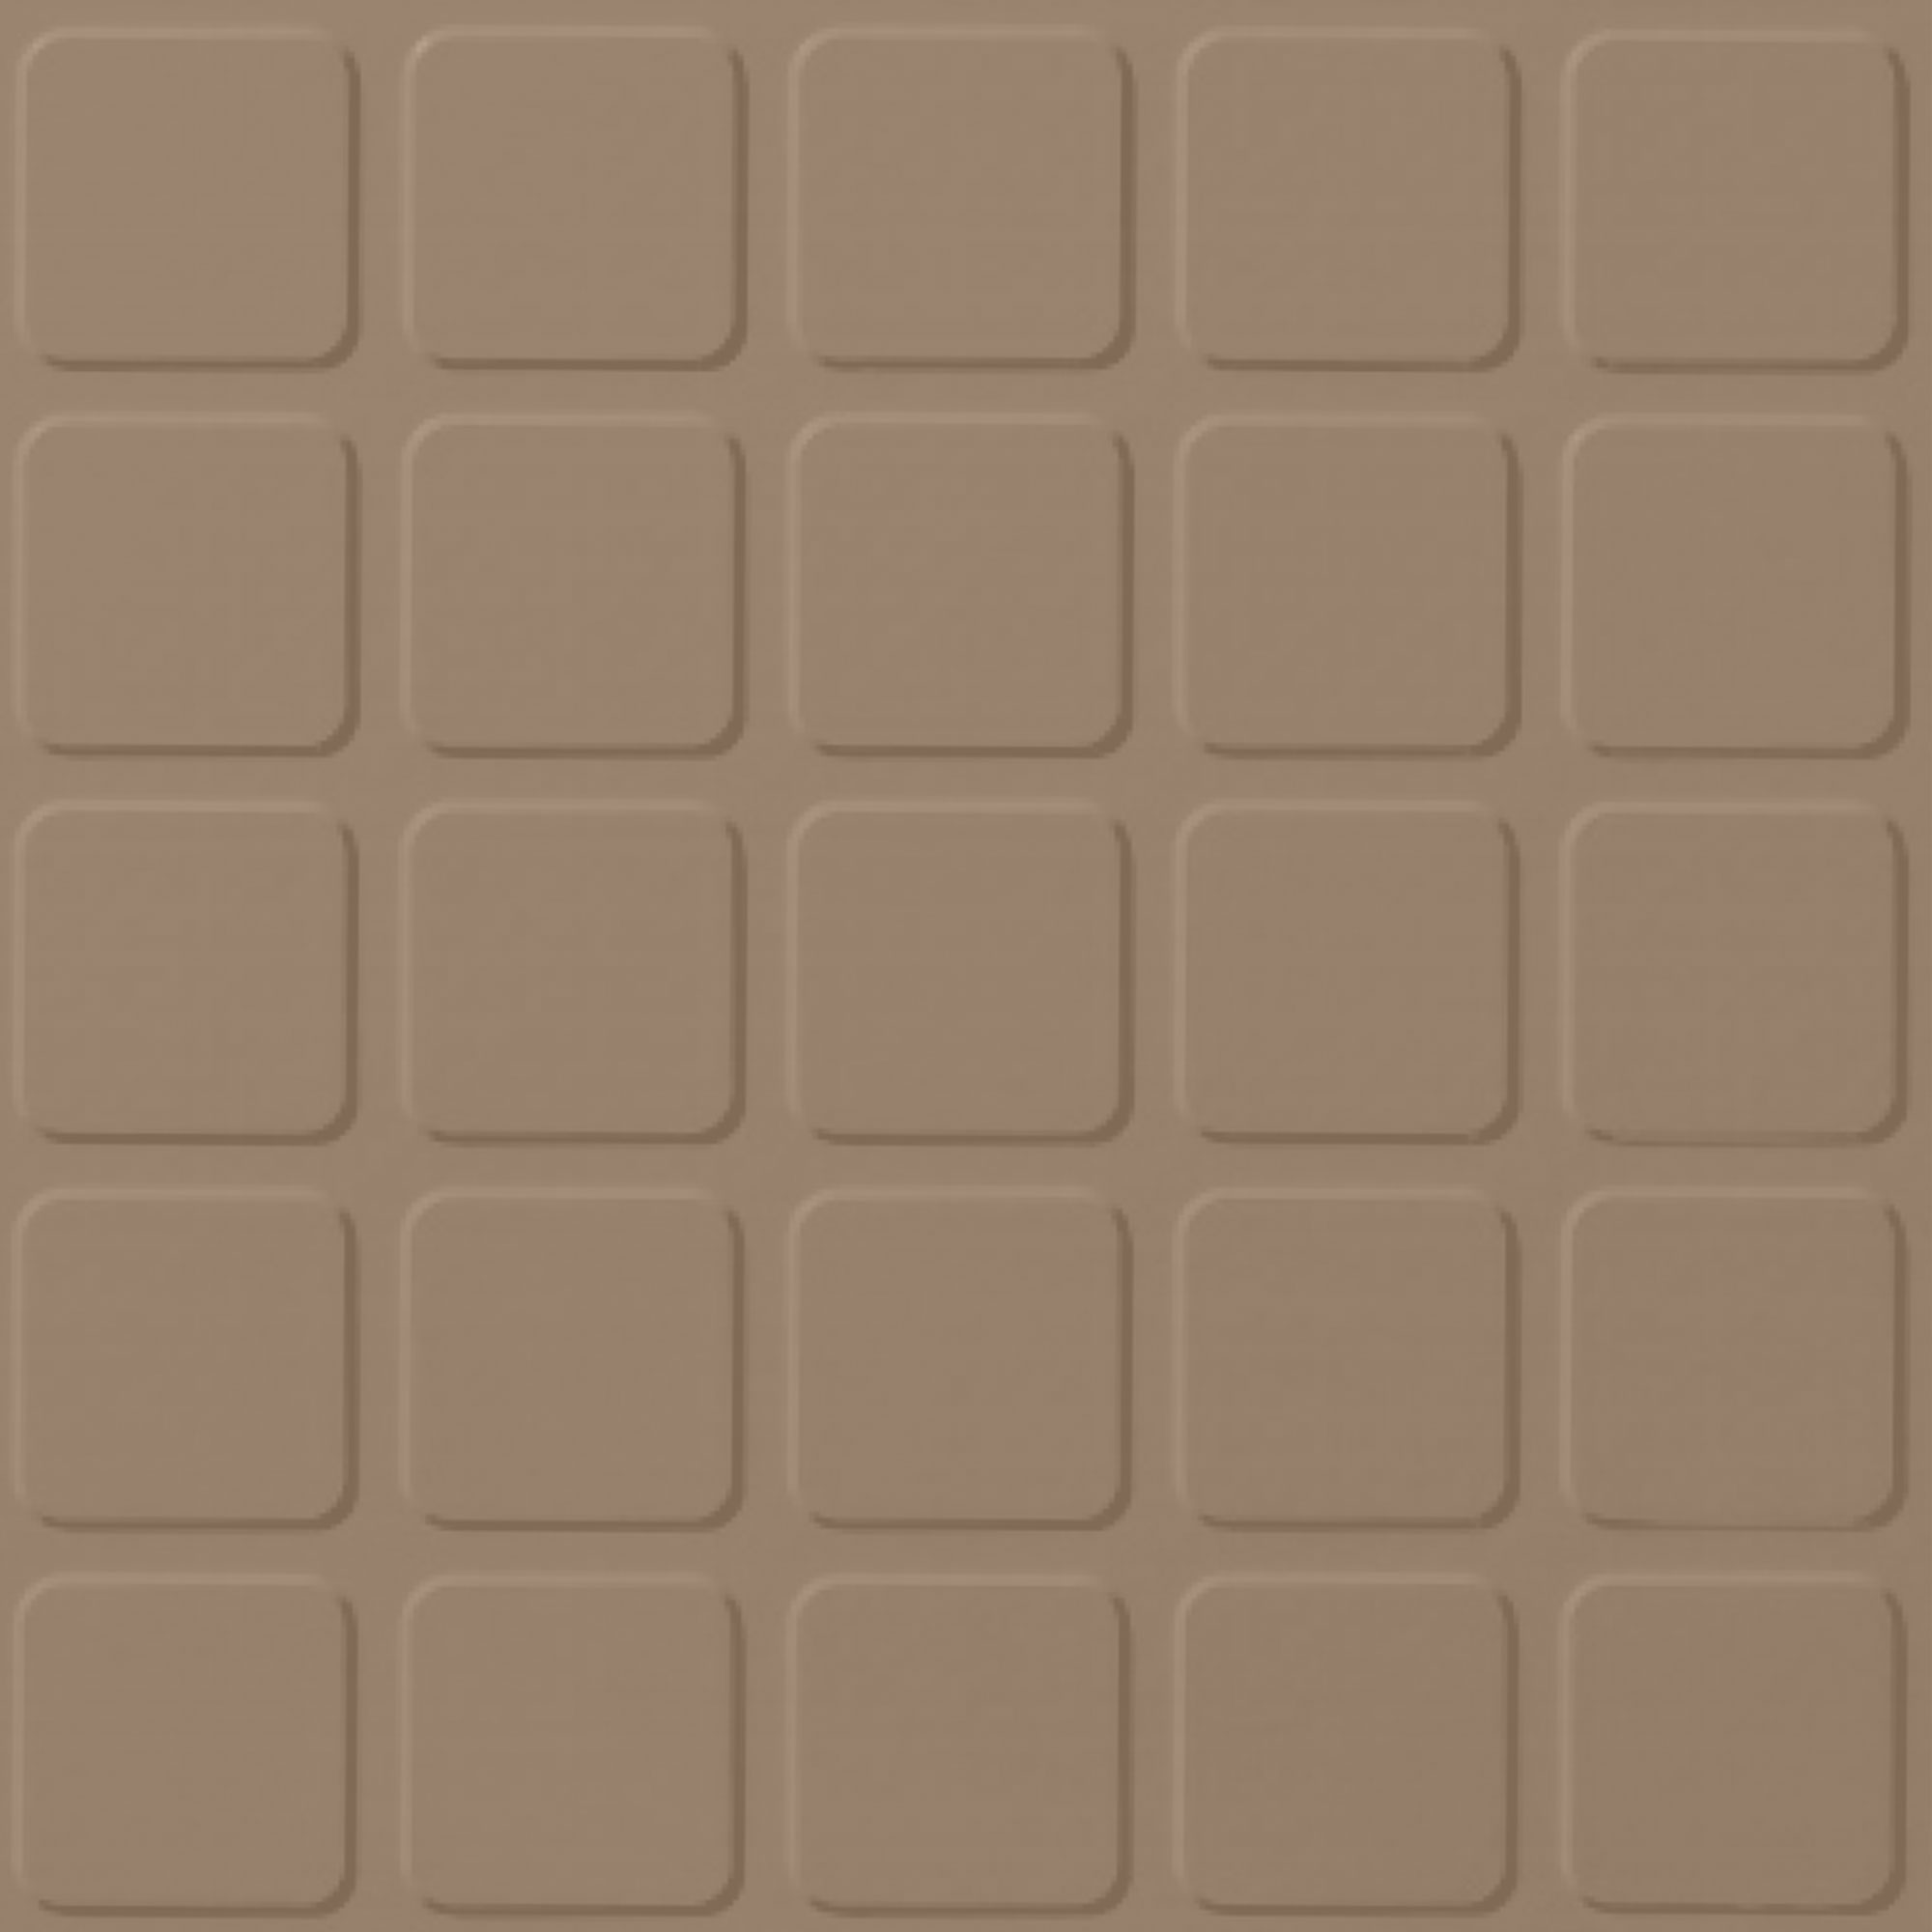 Roppe Rubber Design Treads - Raised Square Design Buckskin 130